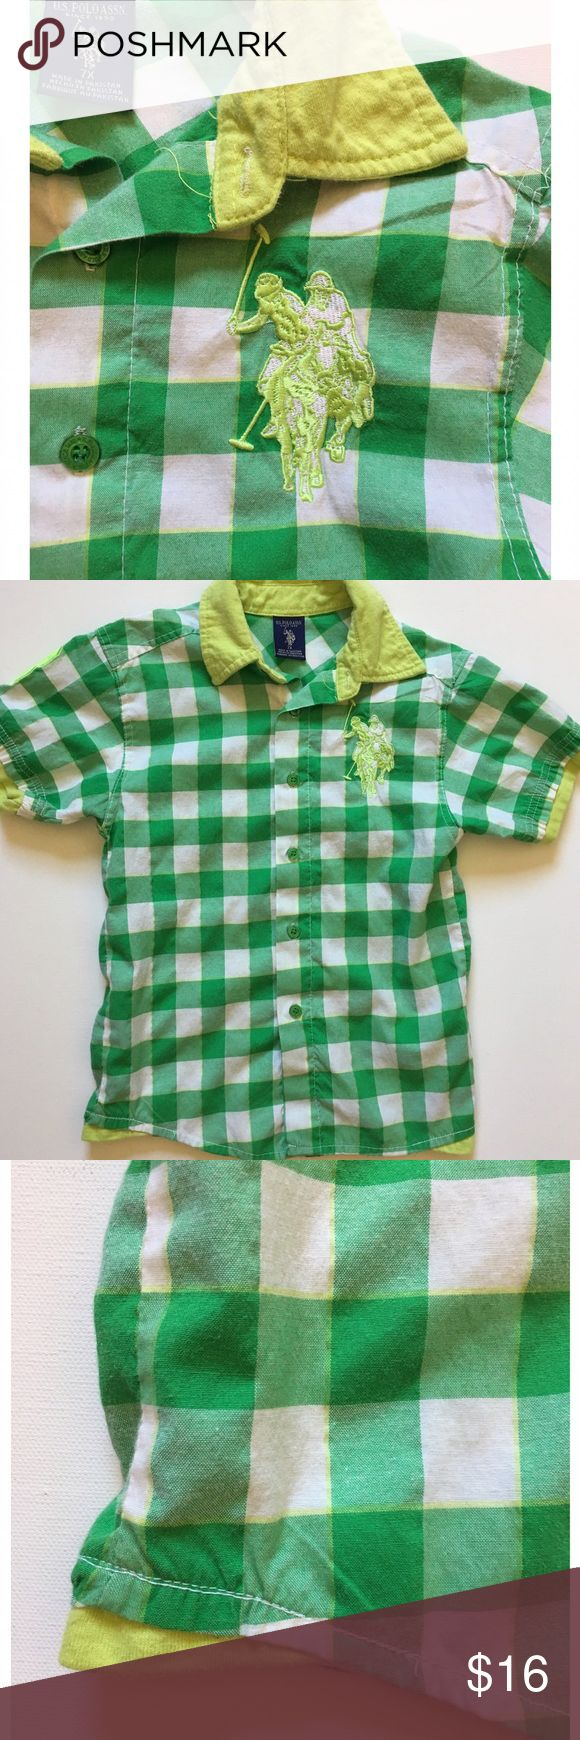 US Polo Green and Yellow Plaid Kid's Top Super stylish collared plaid top by US Polo Assn. worn twice, excellent condition! Button up, yellow collar and bottom detail to simulate layered look. Size 7X.  Thank you for stopping by @stephsgems!   🚫 No Trades 💖 Packaged with Love! Shirts & Tops Button Down Shirts